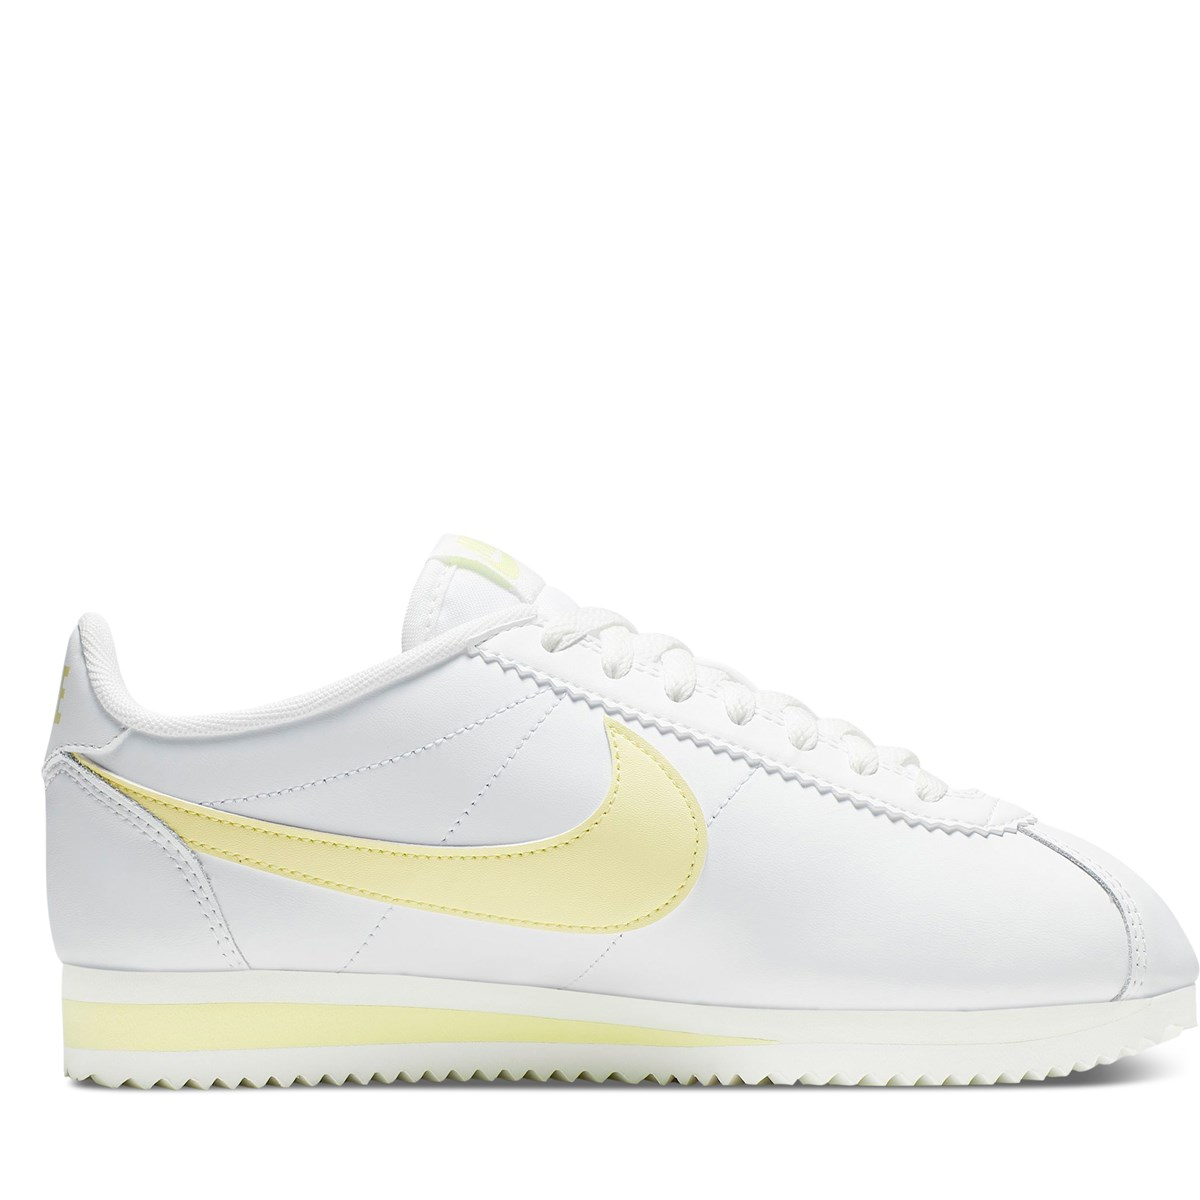 Women's Classic Cortez Sneakers in White